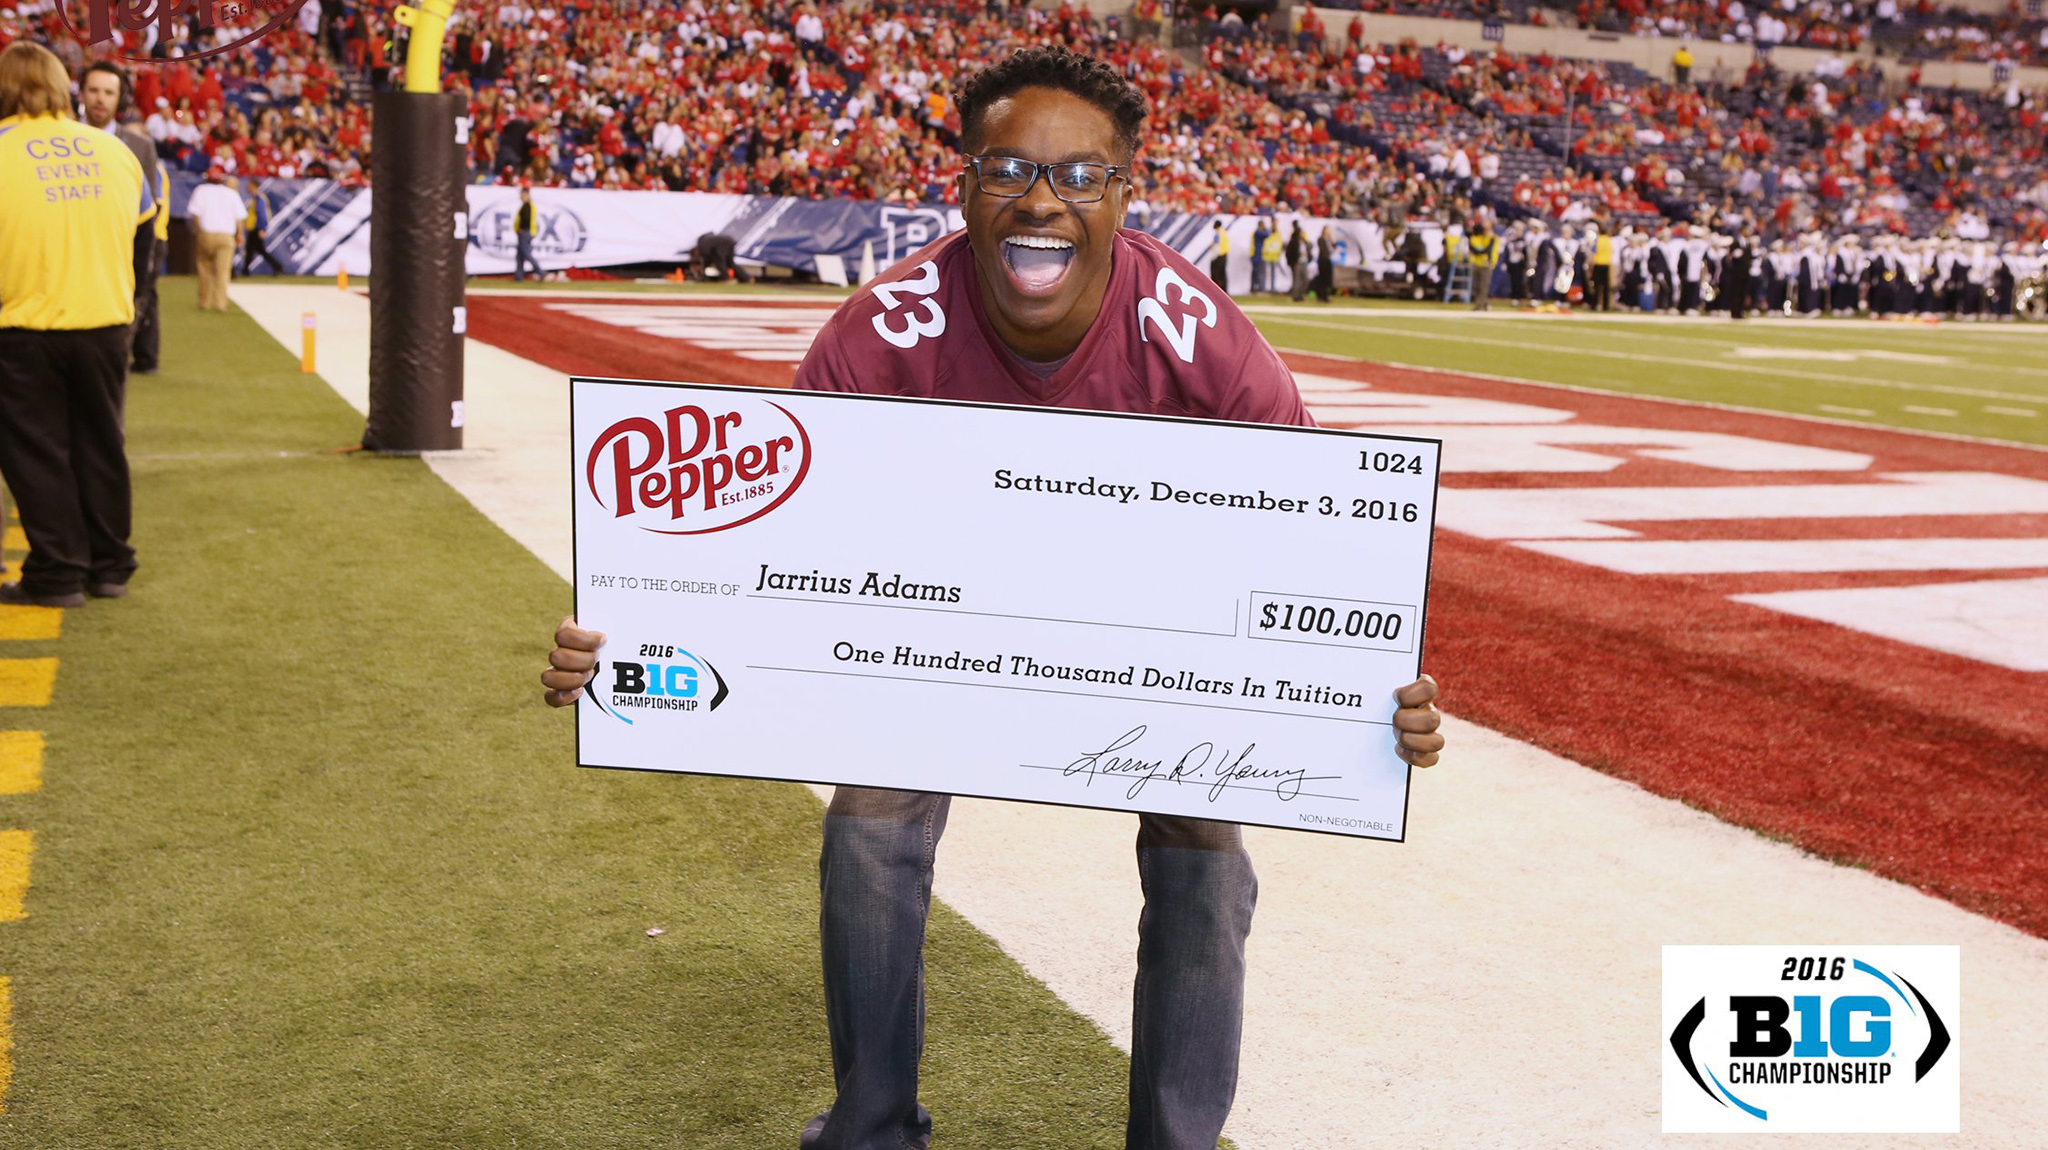 Doctor Of Business Administration >> UM Student Passes His Way to a $100K Scholarship - Ole Miss News